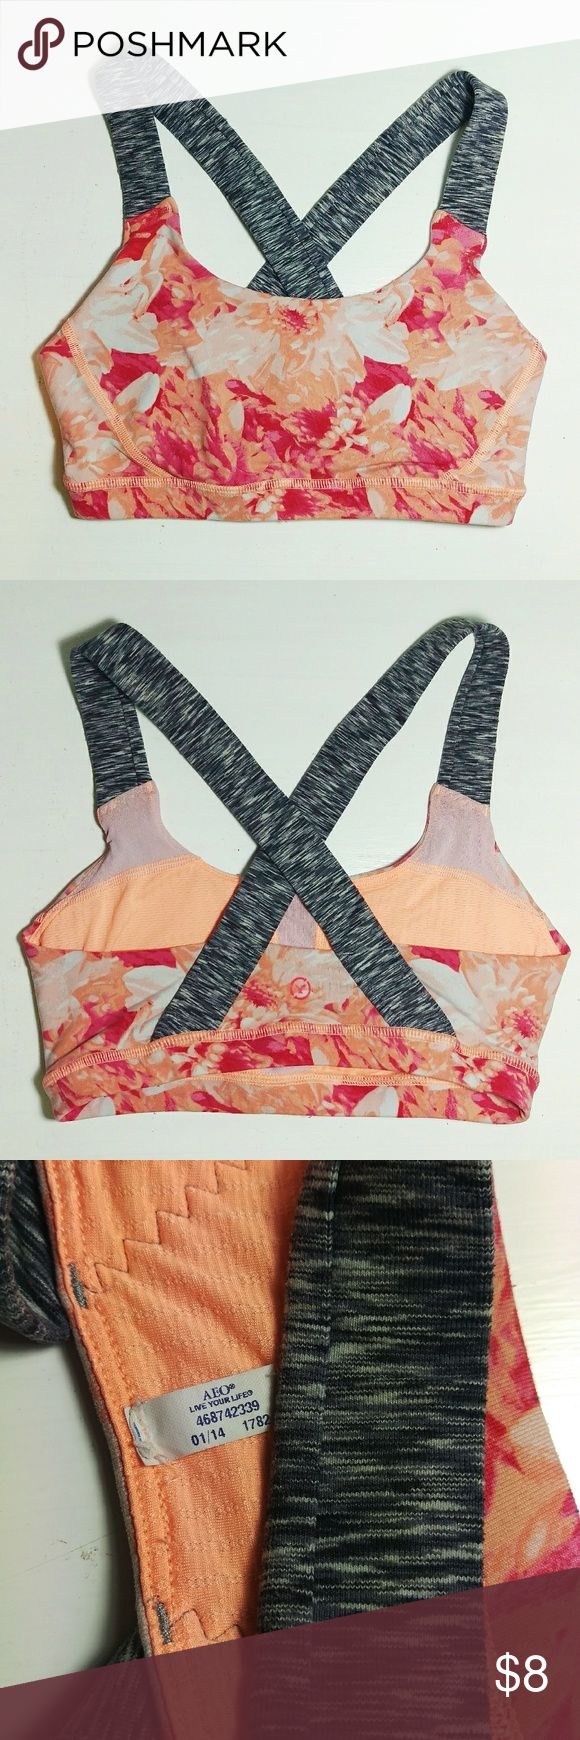 """American Eagle Floral Cross-Back Sports Bra This versatile floral orange and red sports bra is extremely beautiful and supportive. I wore this mostly for yoga or light intensity workouts and they look great under any tank. It's like new still. Sizing: fits a XS or S with 28-32"""" chest and A-B cup. American Eagle Outfitters Intimates & Sleepwear Bras"""